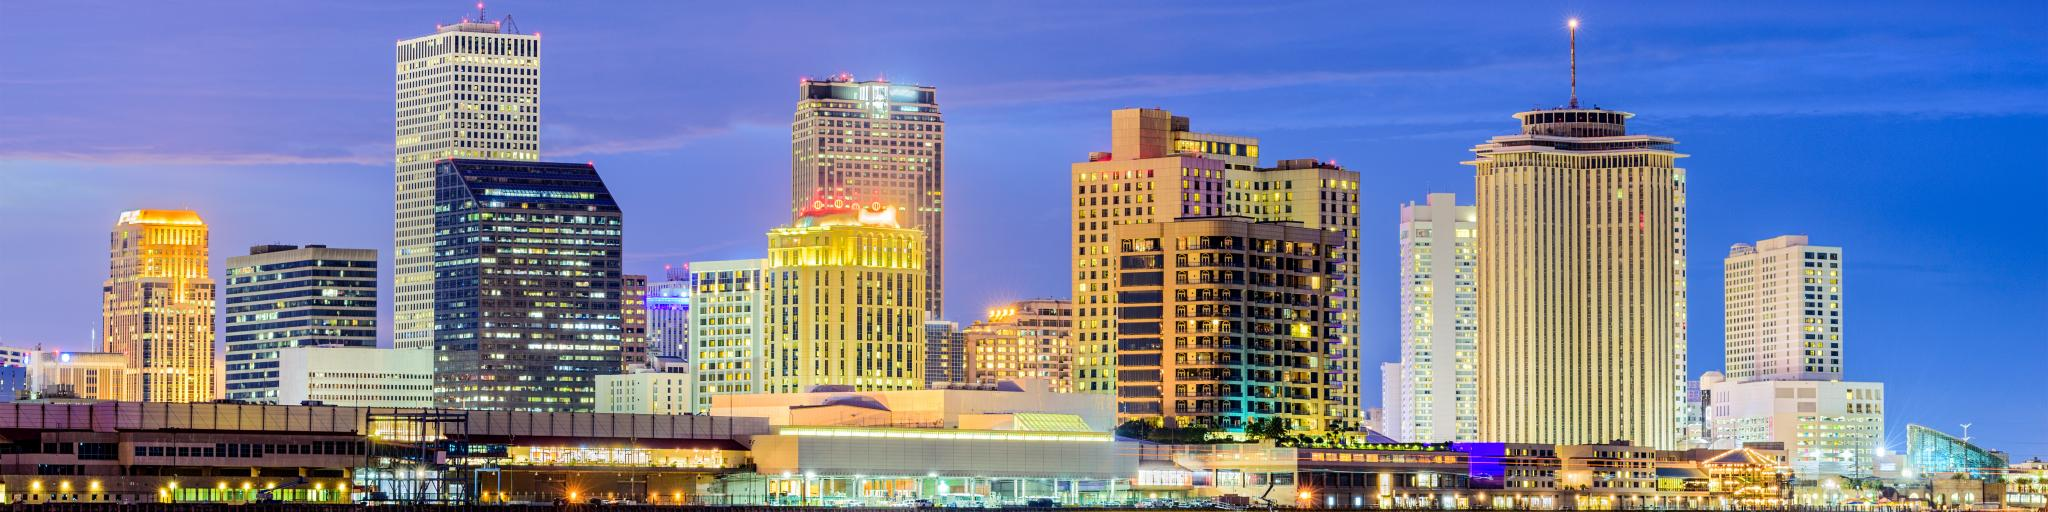 A view of the New Orleans skyline